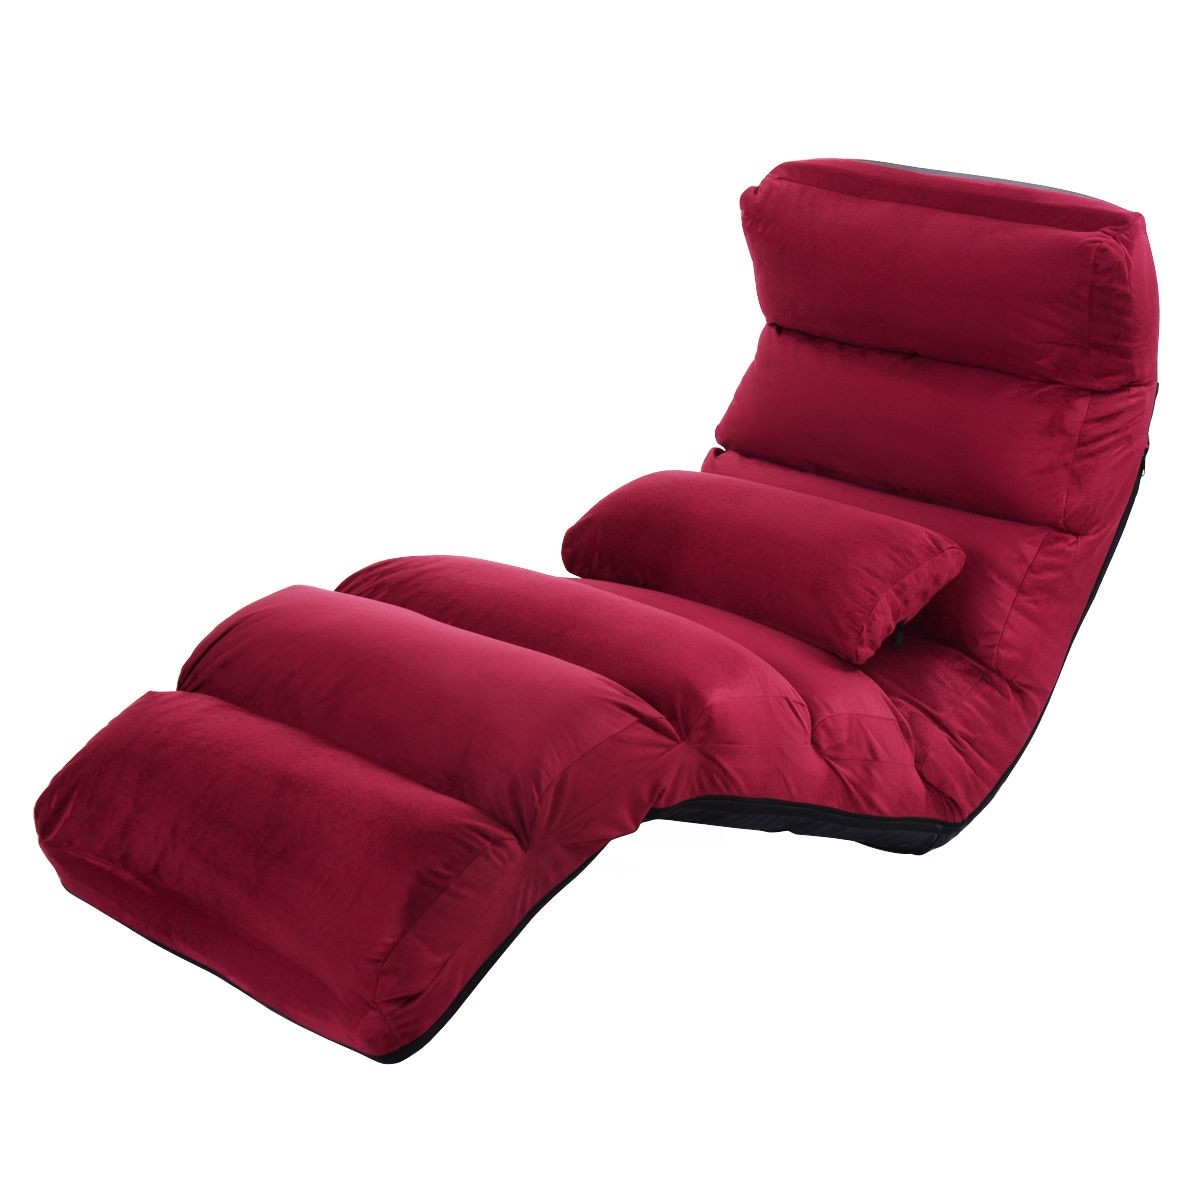 Folding Lazy Sofa Couch With Pillow Floor Chairs Chairs Regarding Lazy Sofa Chairs (Image 7 of 15)